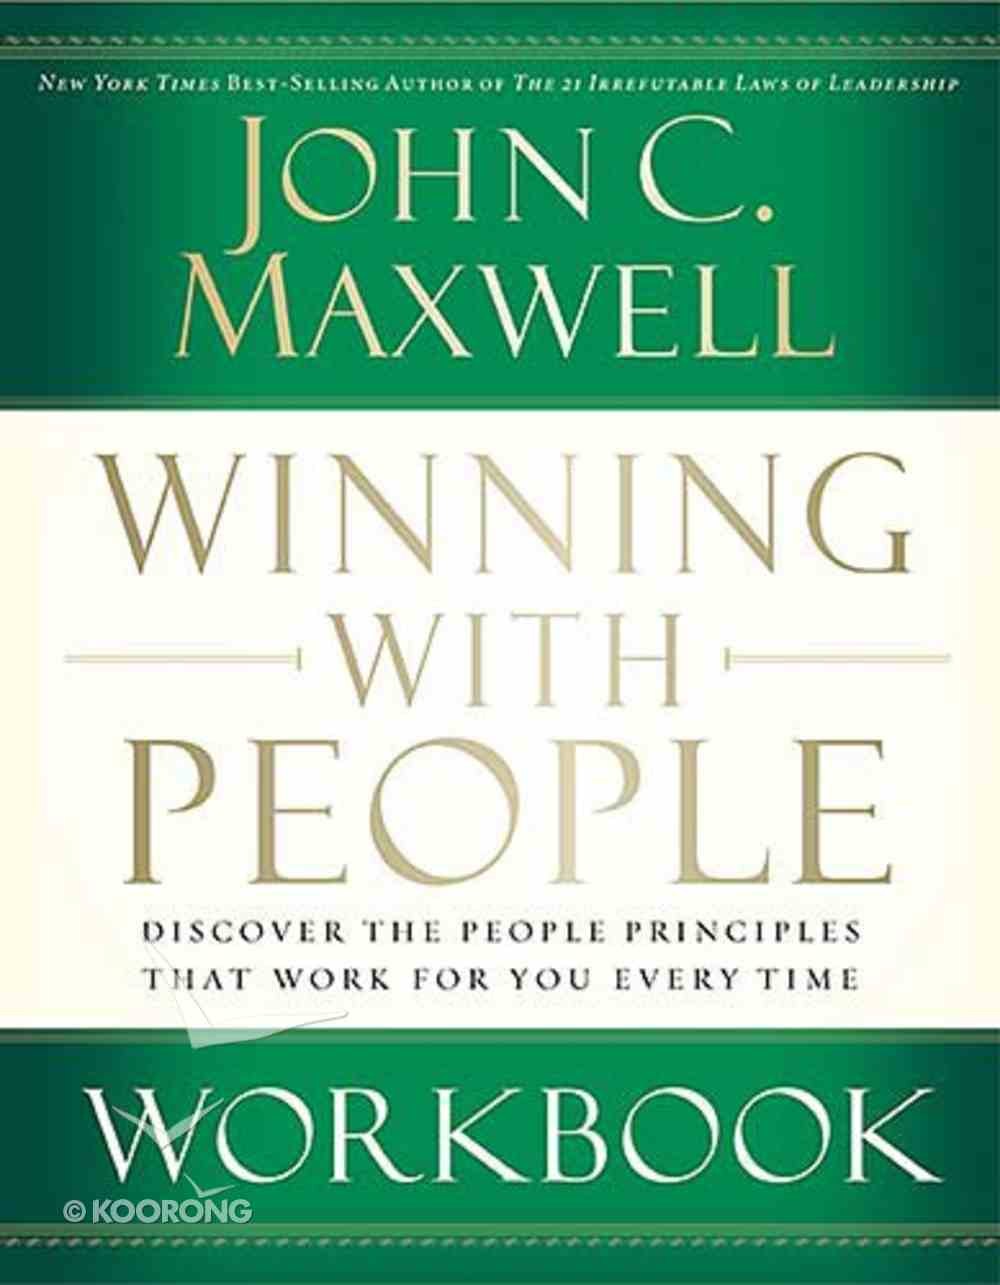 Winning With People: Discover the People Principles That Work For You Every Time (Workbook) Paperback